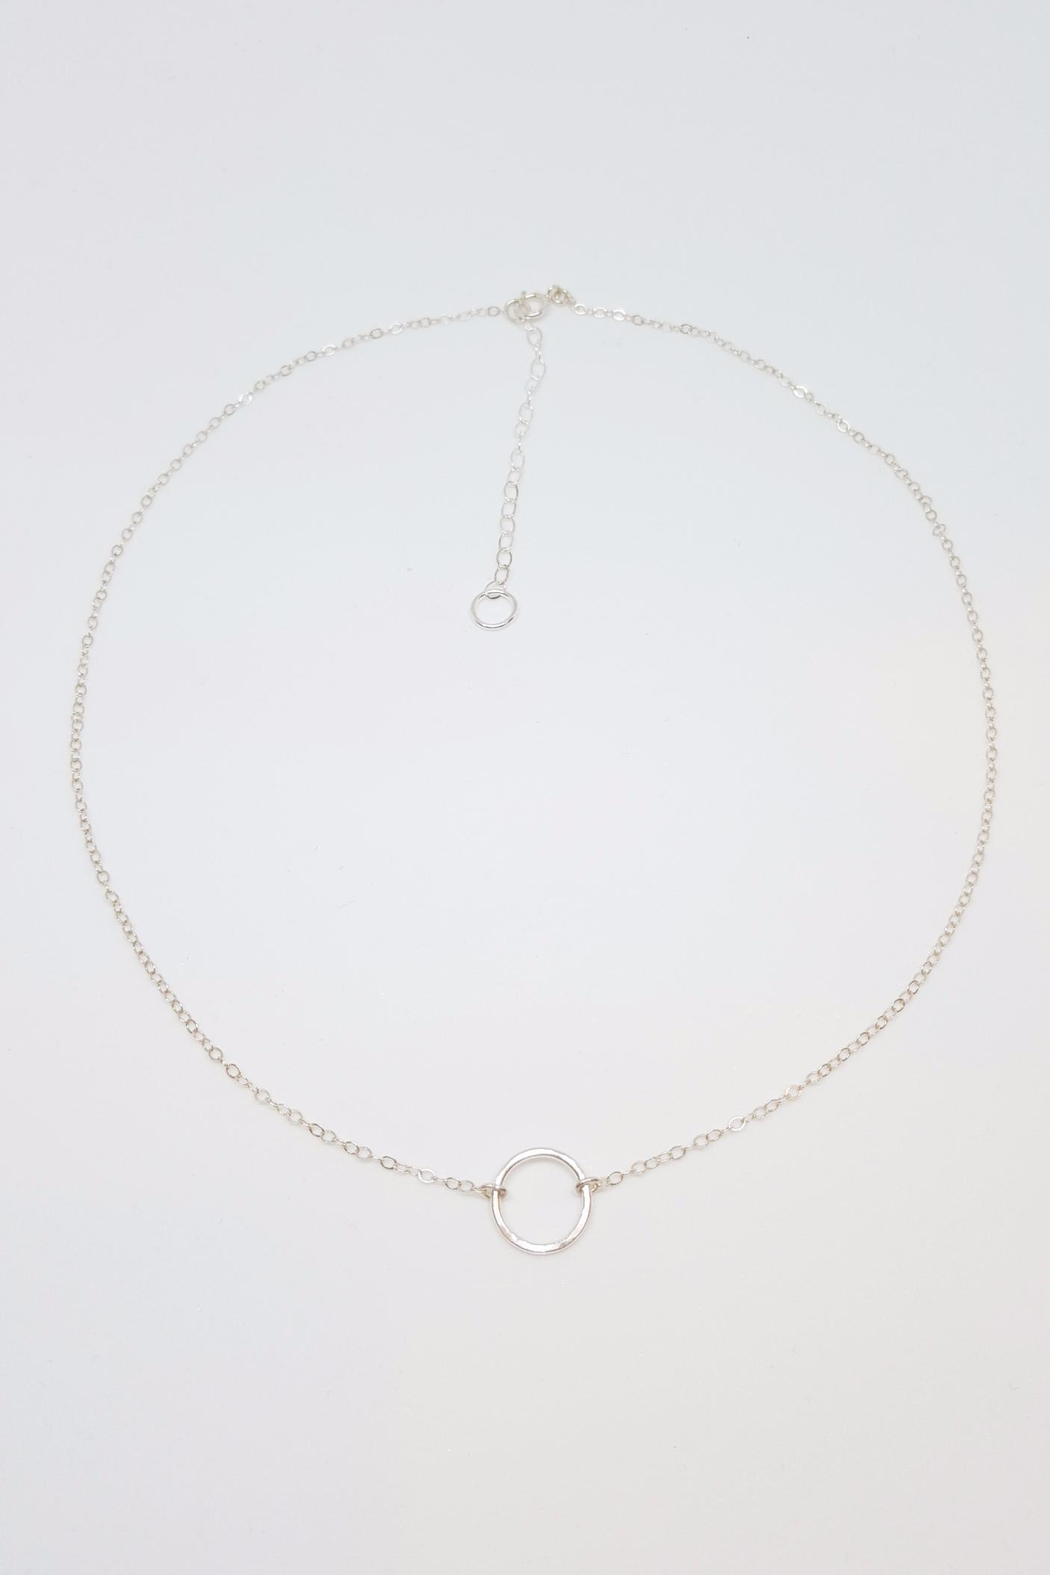 Simply Chic Silver Open Circle Necklace - Main Image